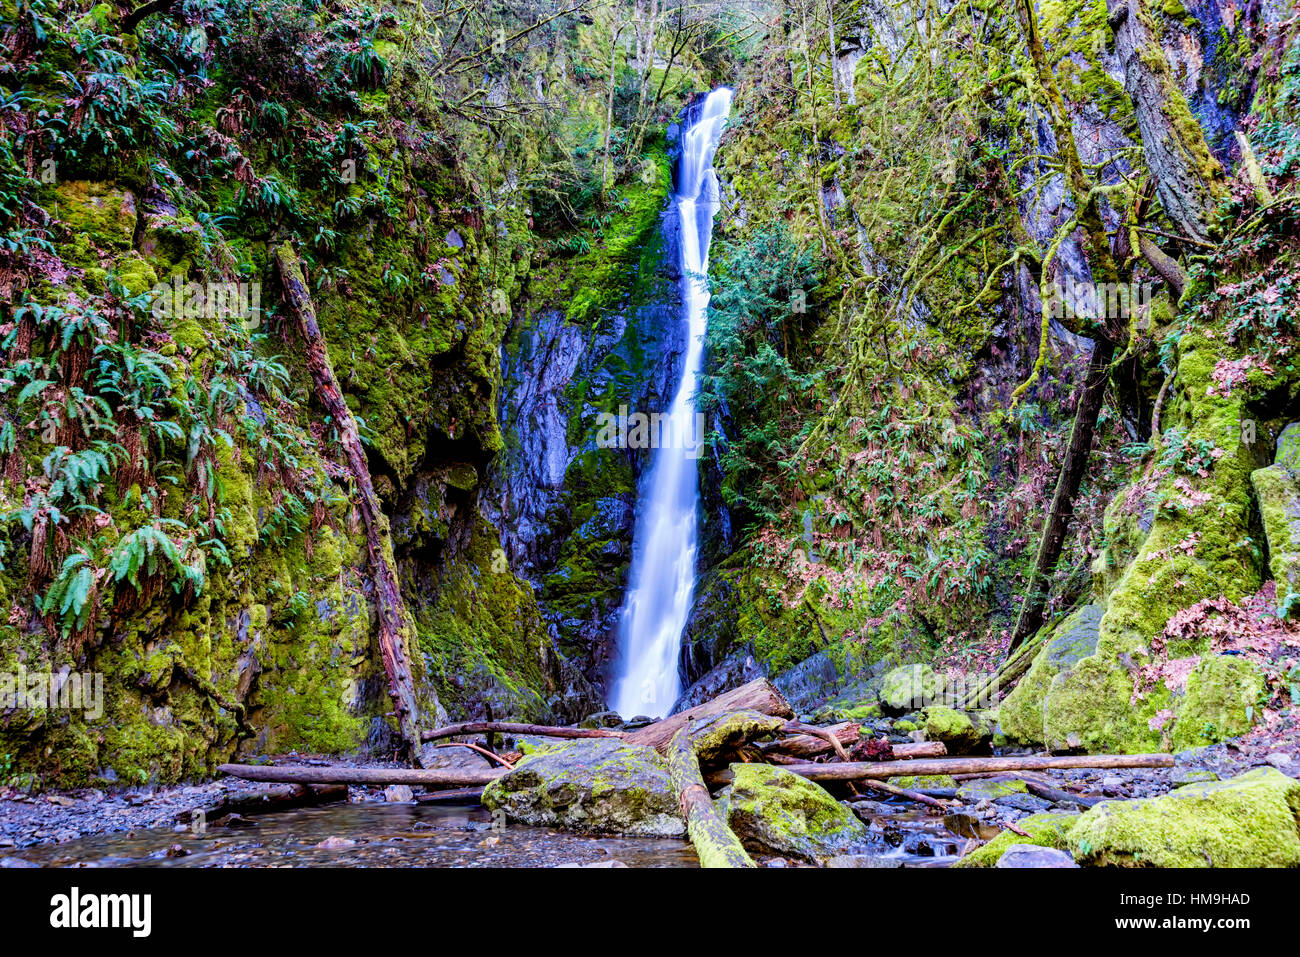 Nature of Vancouver Island - Niagara waterfalls in Early spring, Goldstream provincial park, Vancouver island, Canada Stock Photo